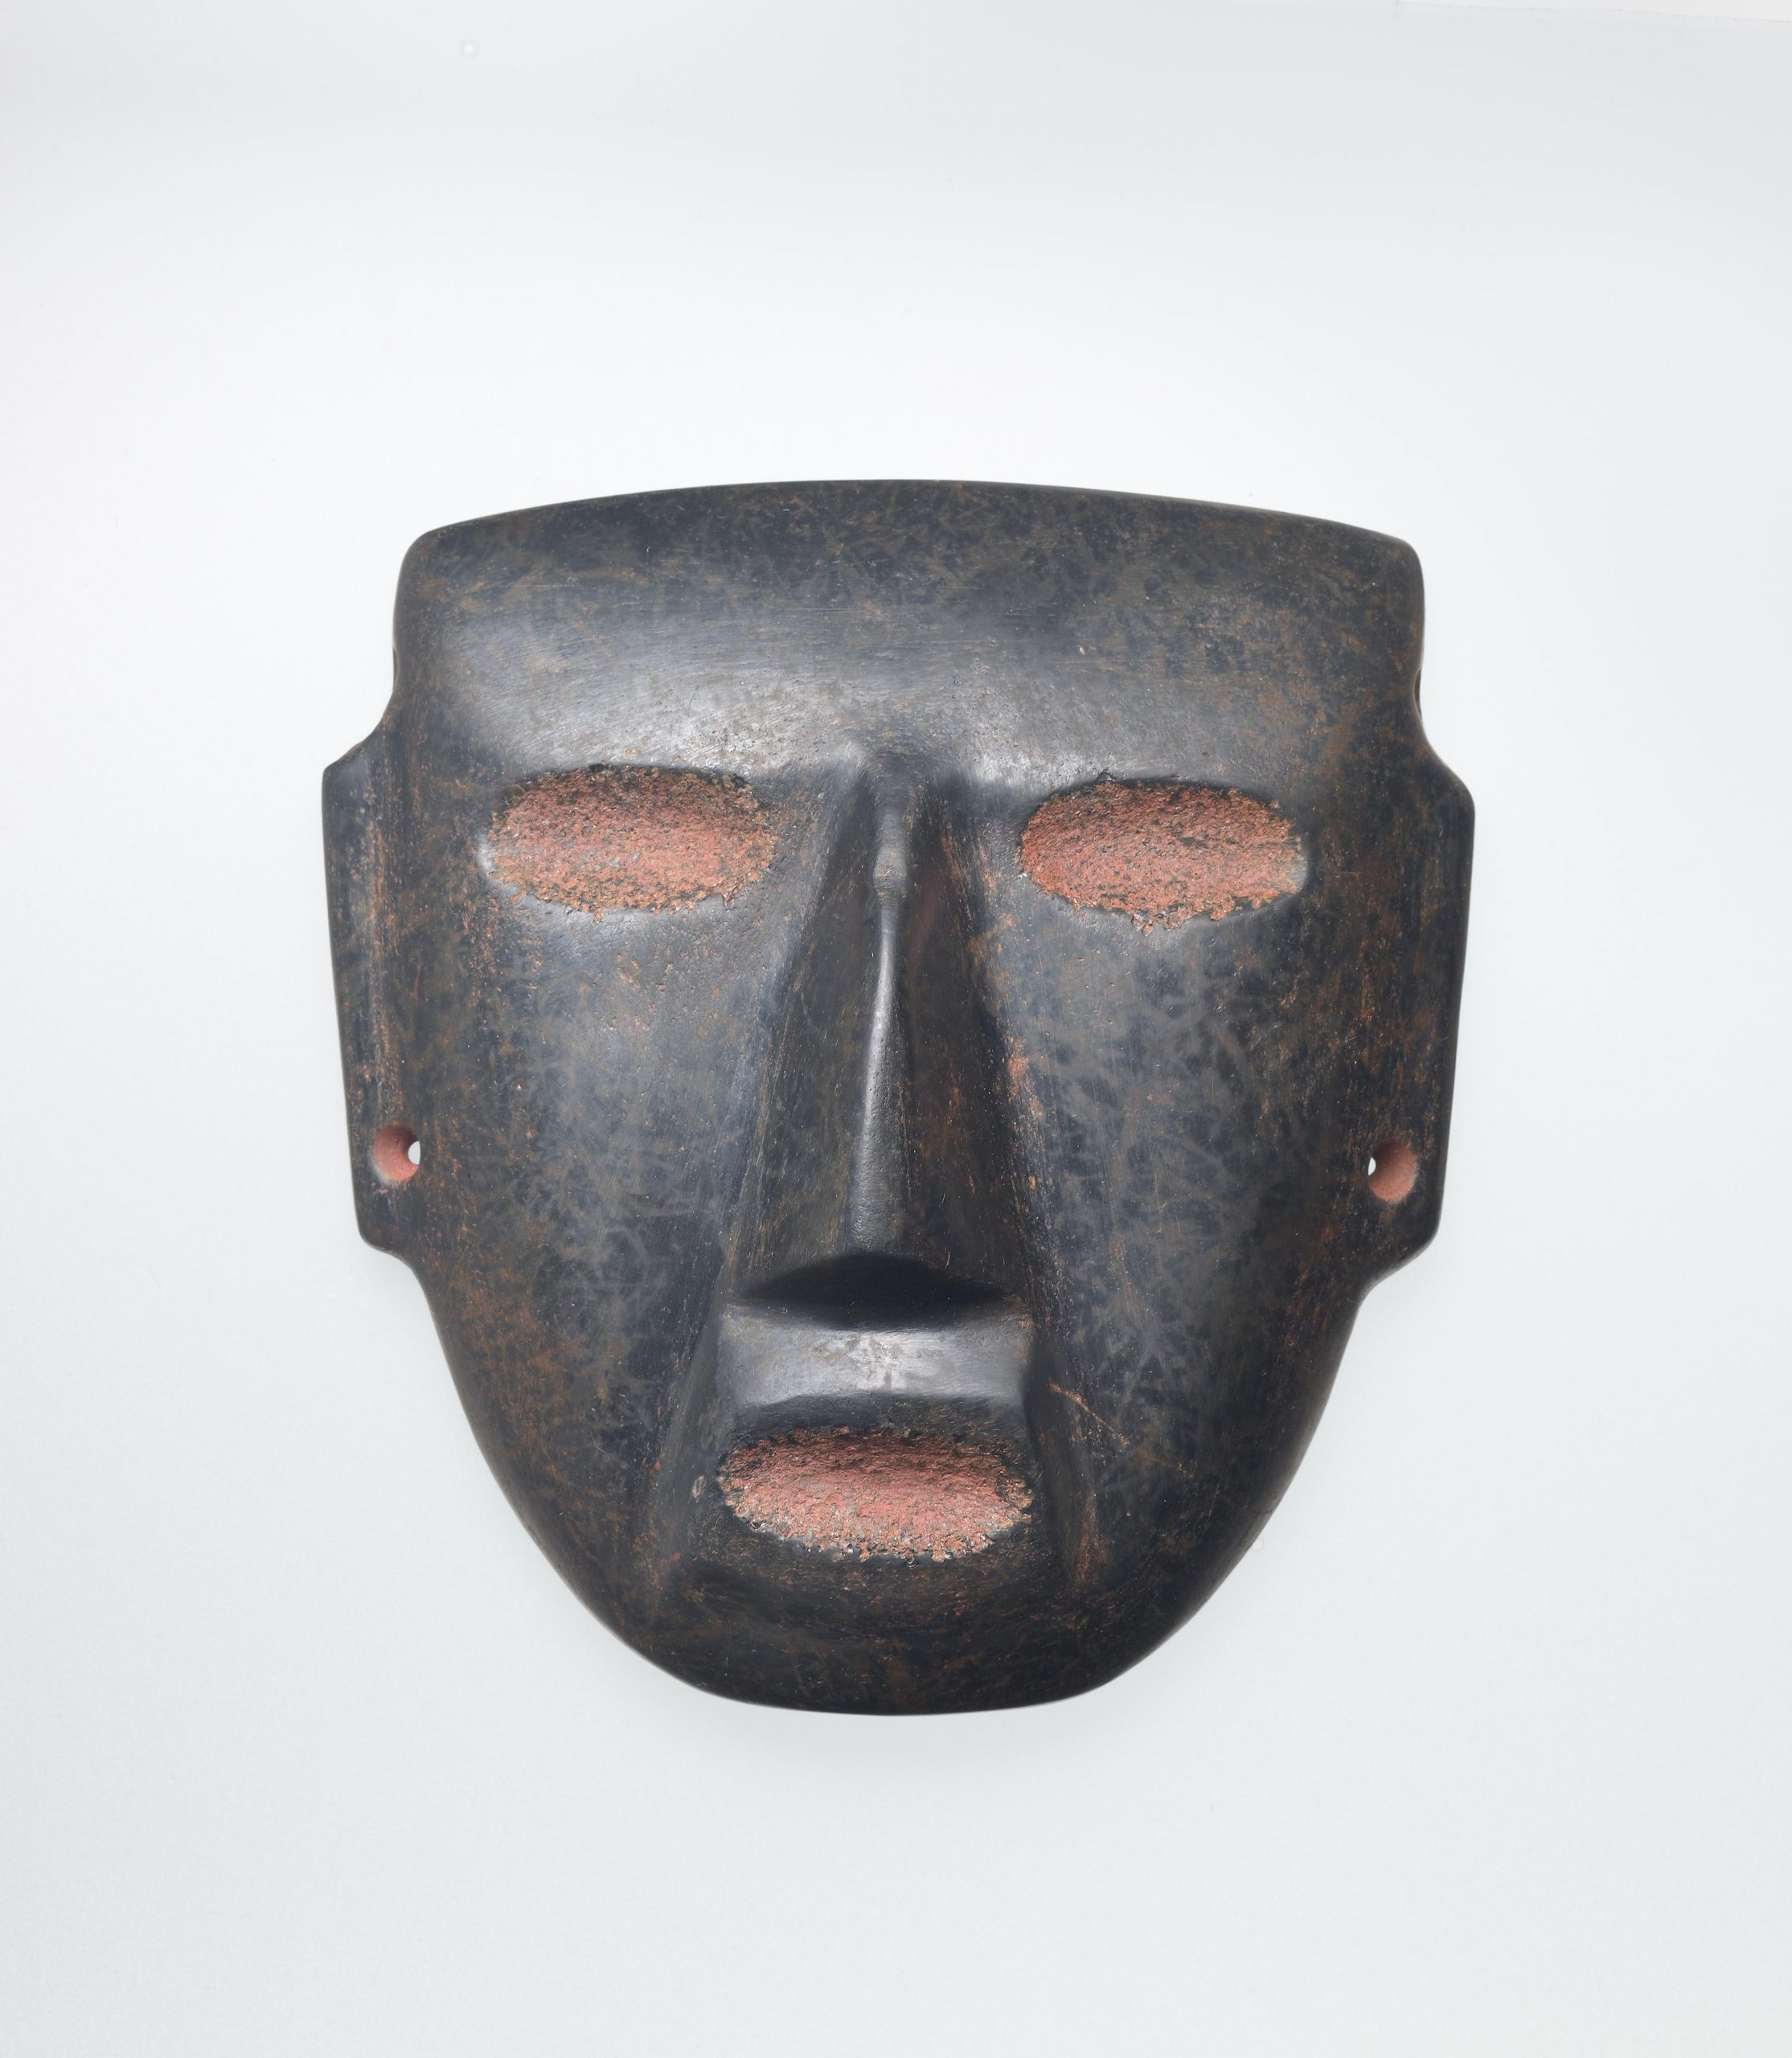 A round abstract stone mask with small indented eyes, mouth and a round nose.